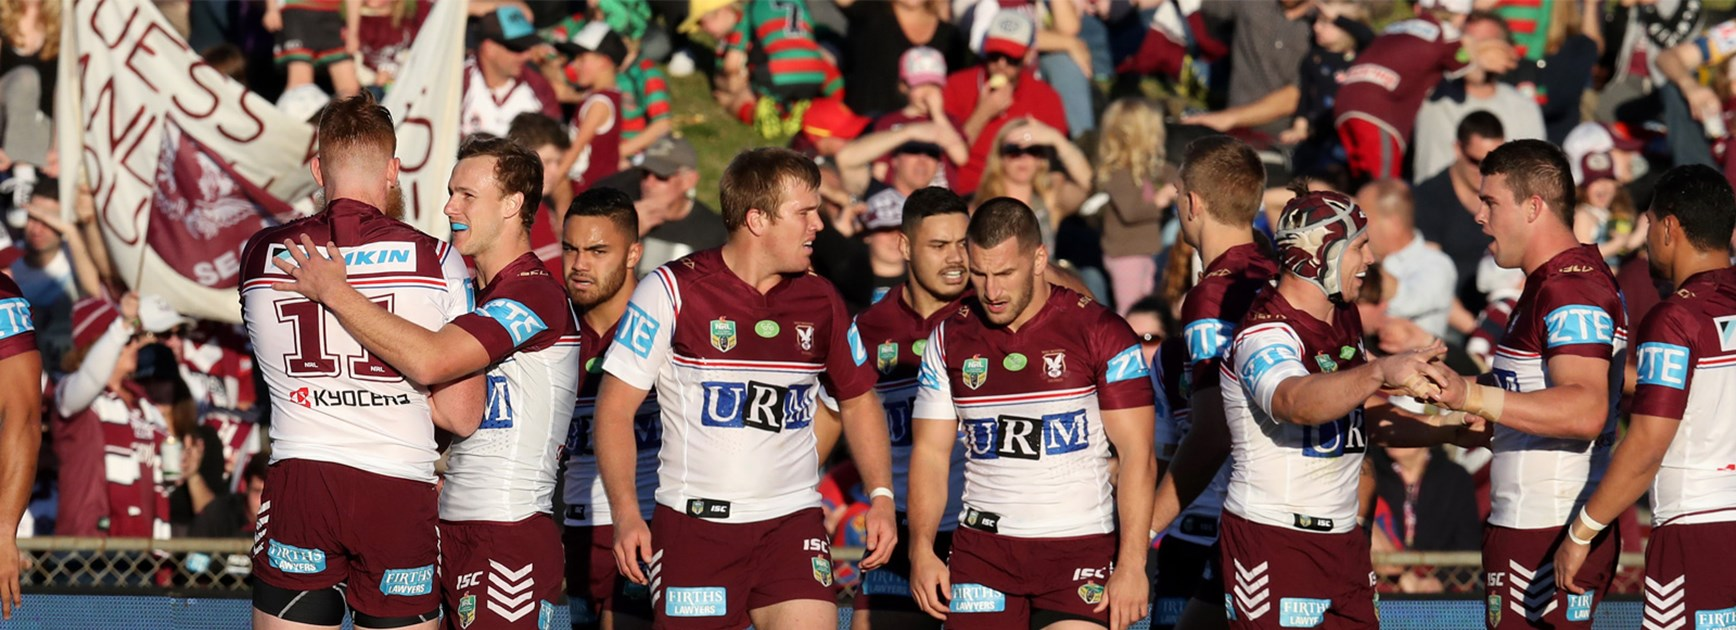 Manly celebrate a try against the Knights at Brookvale Oval in Round 21.